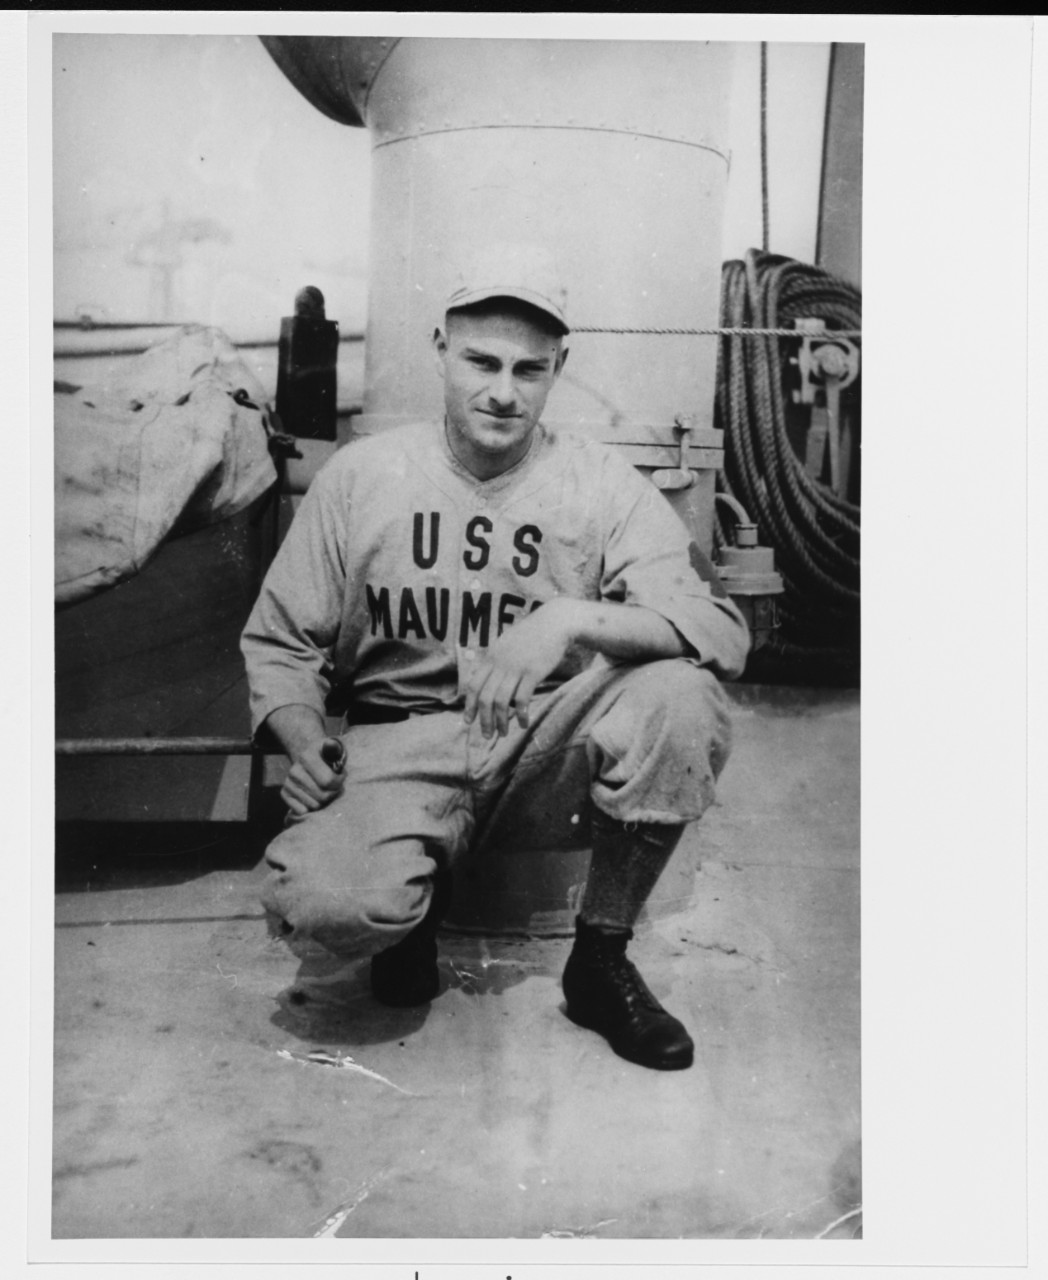 Hubert C. Rickert, USN